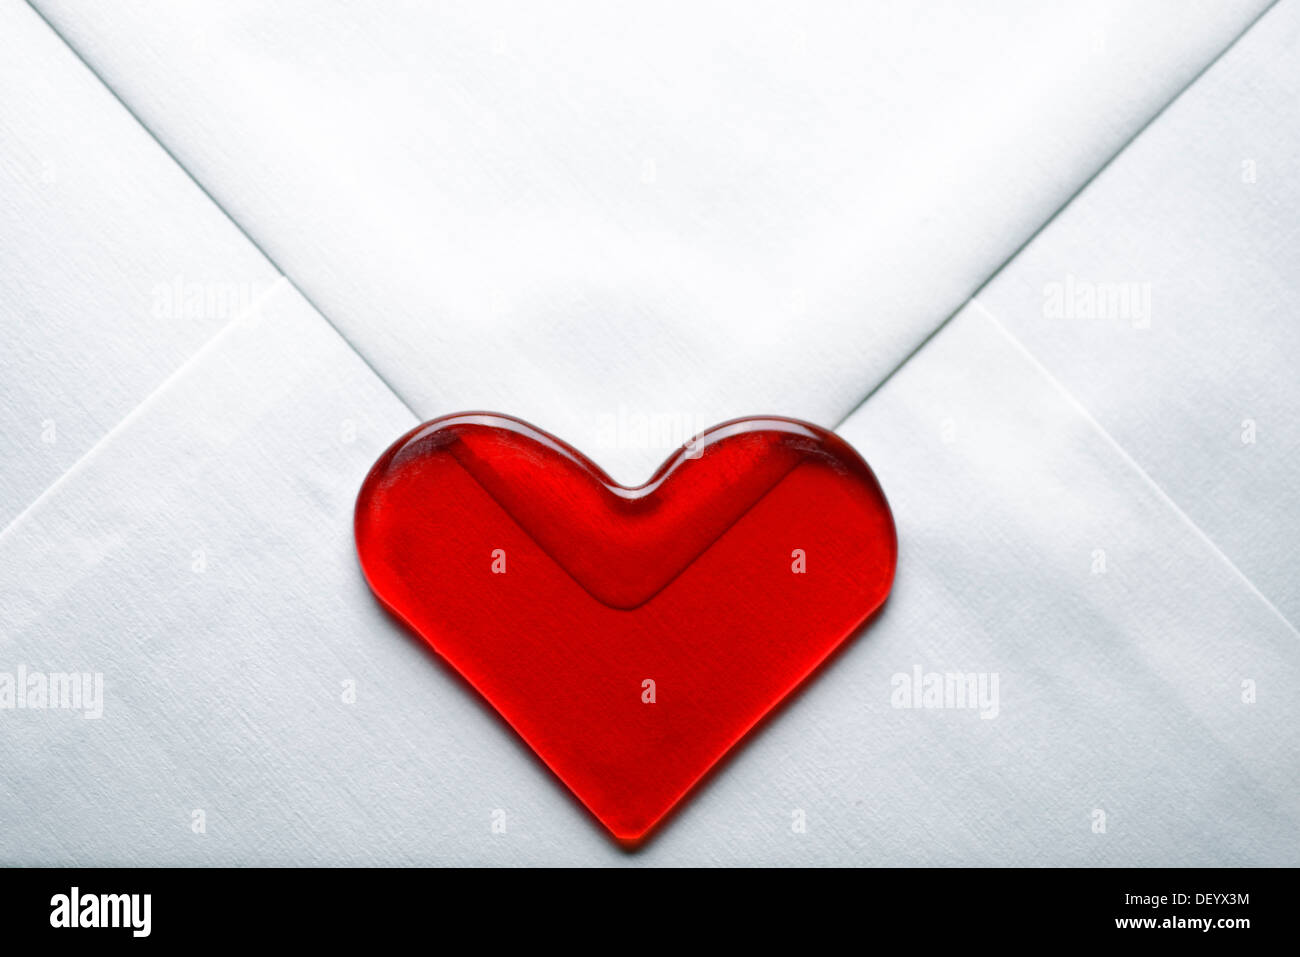 Love letter with a heart, Germany - Stock Image